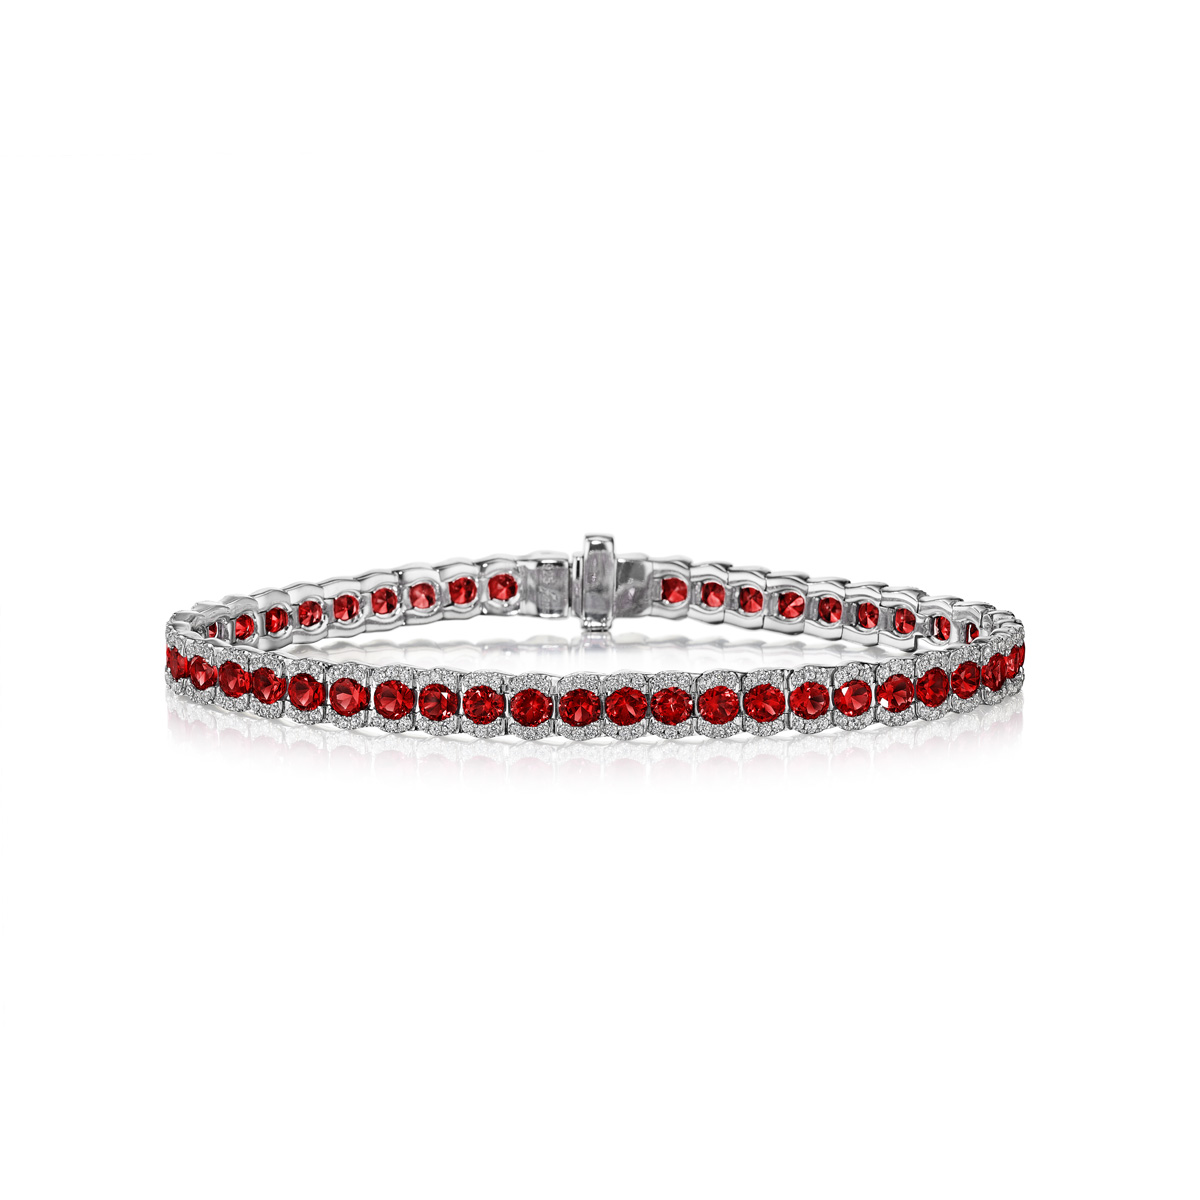 Brilliant in Red Ruby and Diamond Bracelet - This brilliant in red ruby and diamond bracelet comes in a variety of material types like 14k white gold, yellow gold, rose gold and can be customized with your jeweler. Classic Fana gemstone bracelets are perfect for that special woman in your life.